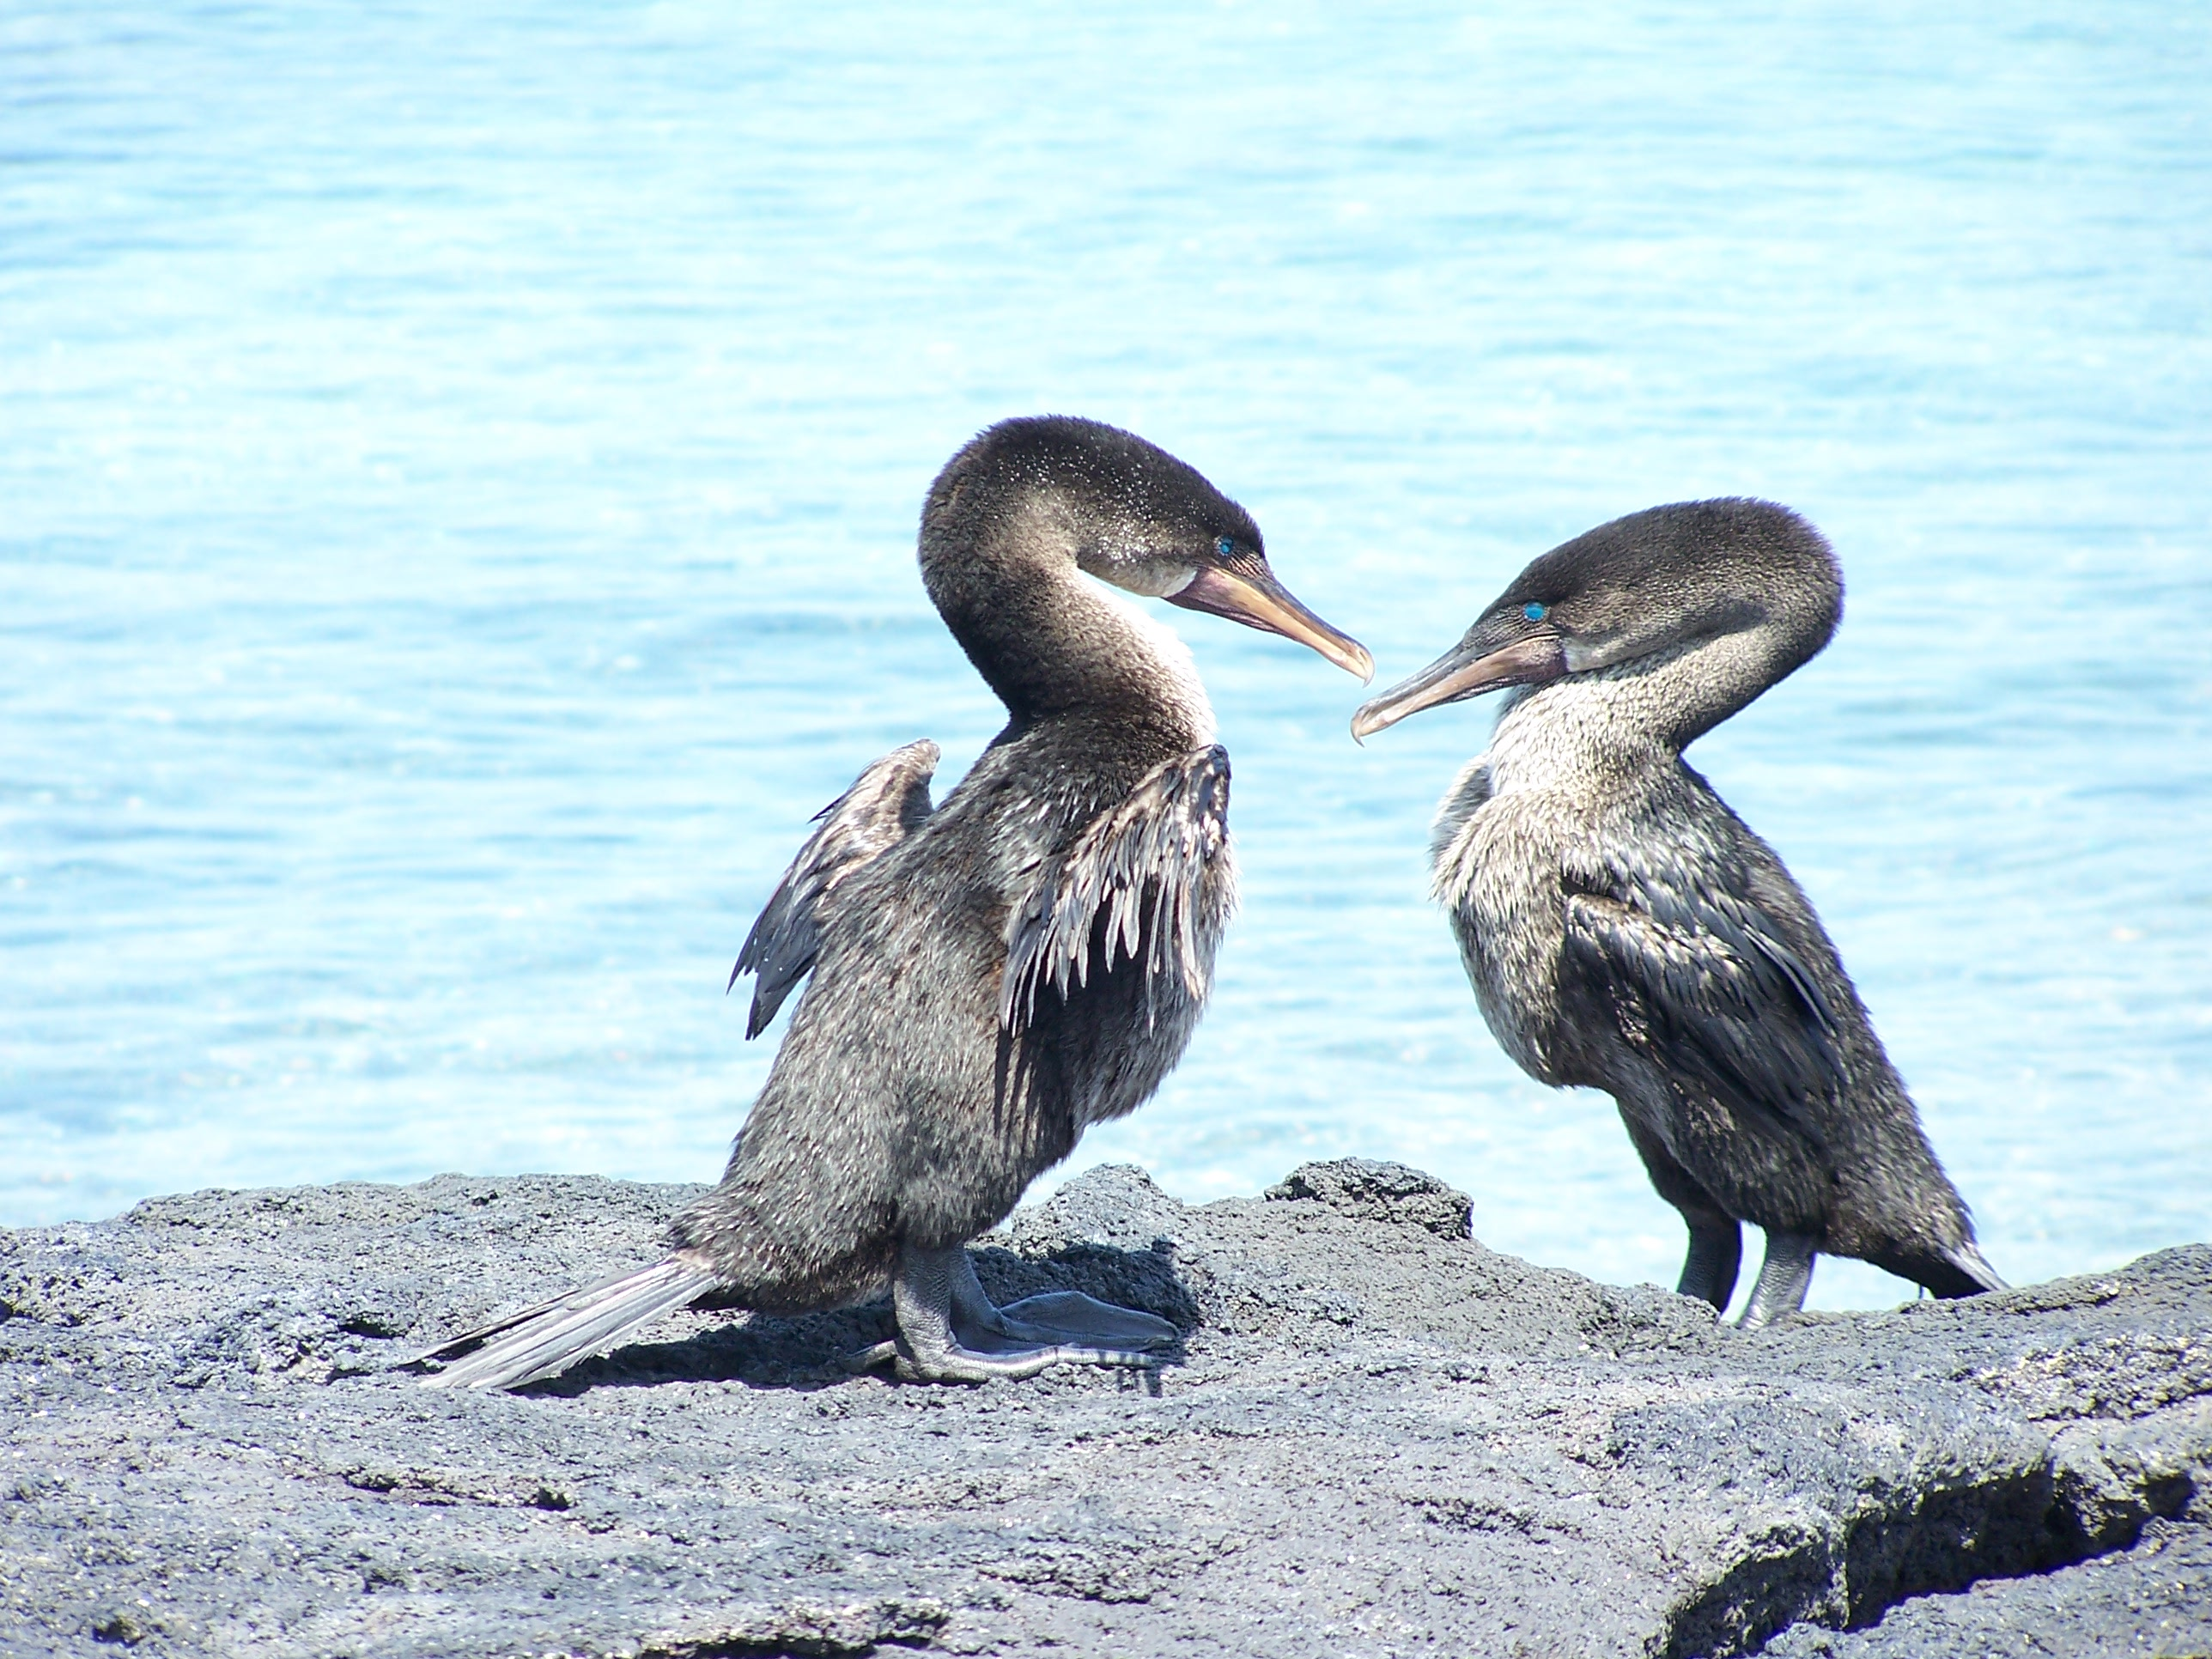 A Close Encounter With Five Endemic Species Of The Galapagos Islands